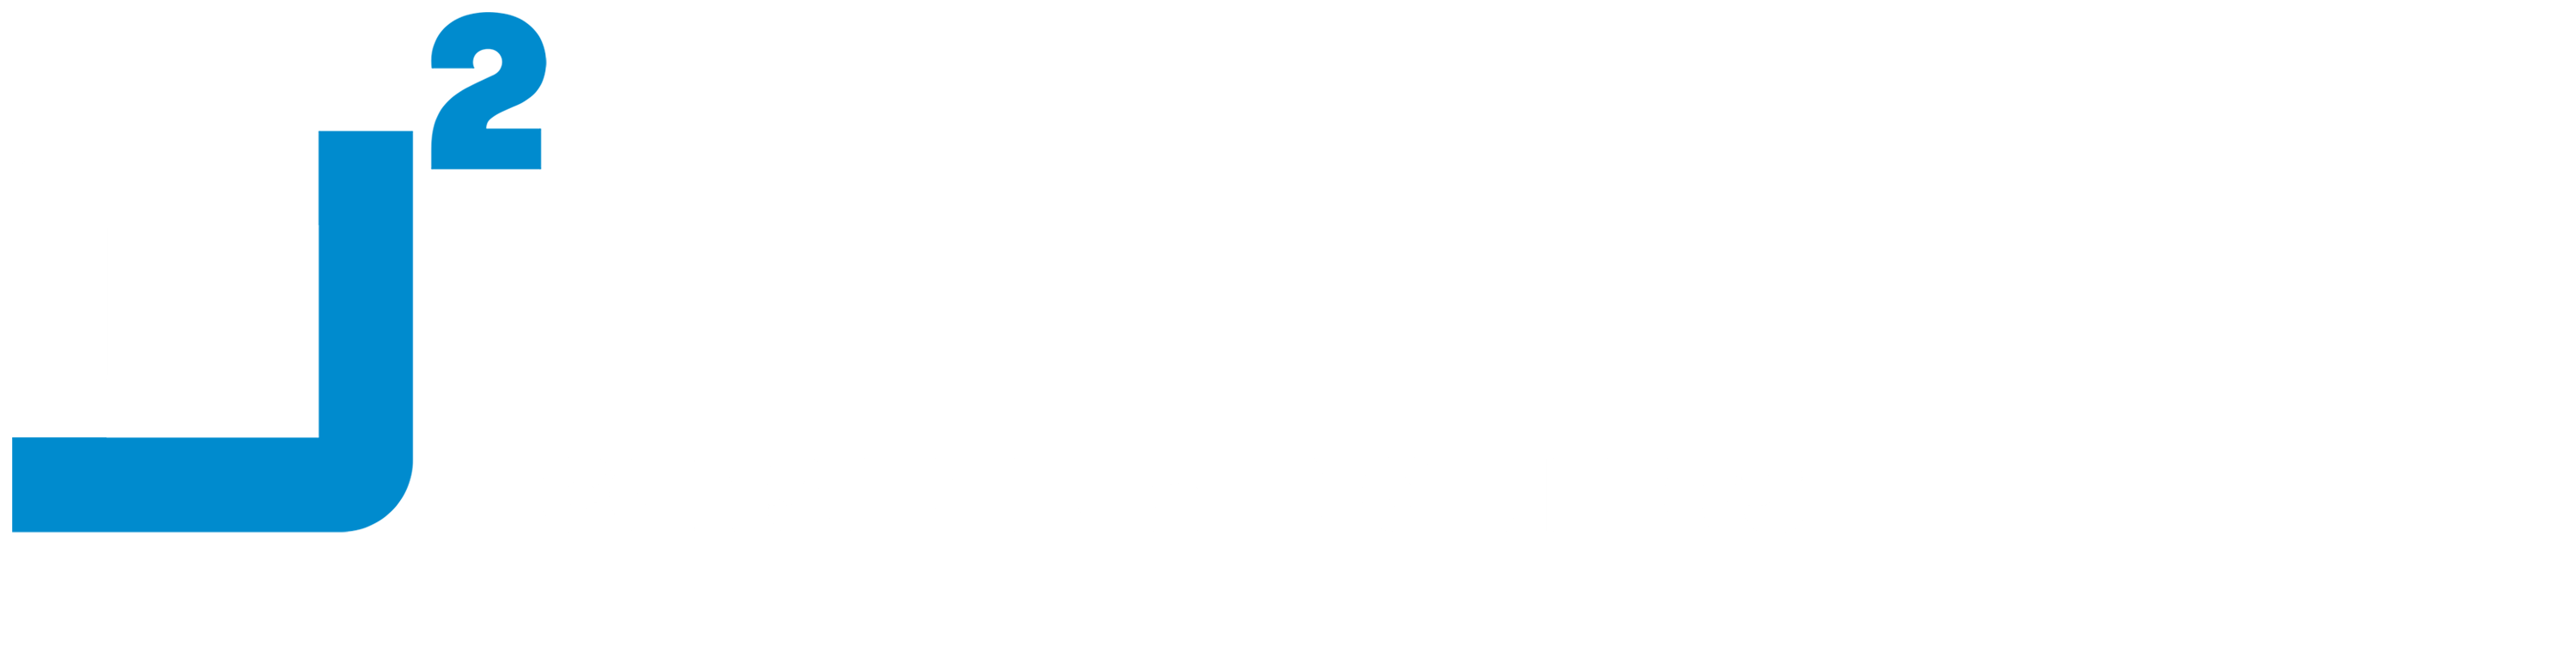 J SQUARED CONSULTING ENGINEERS